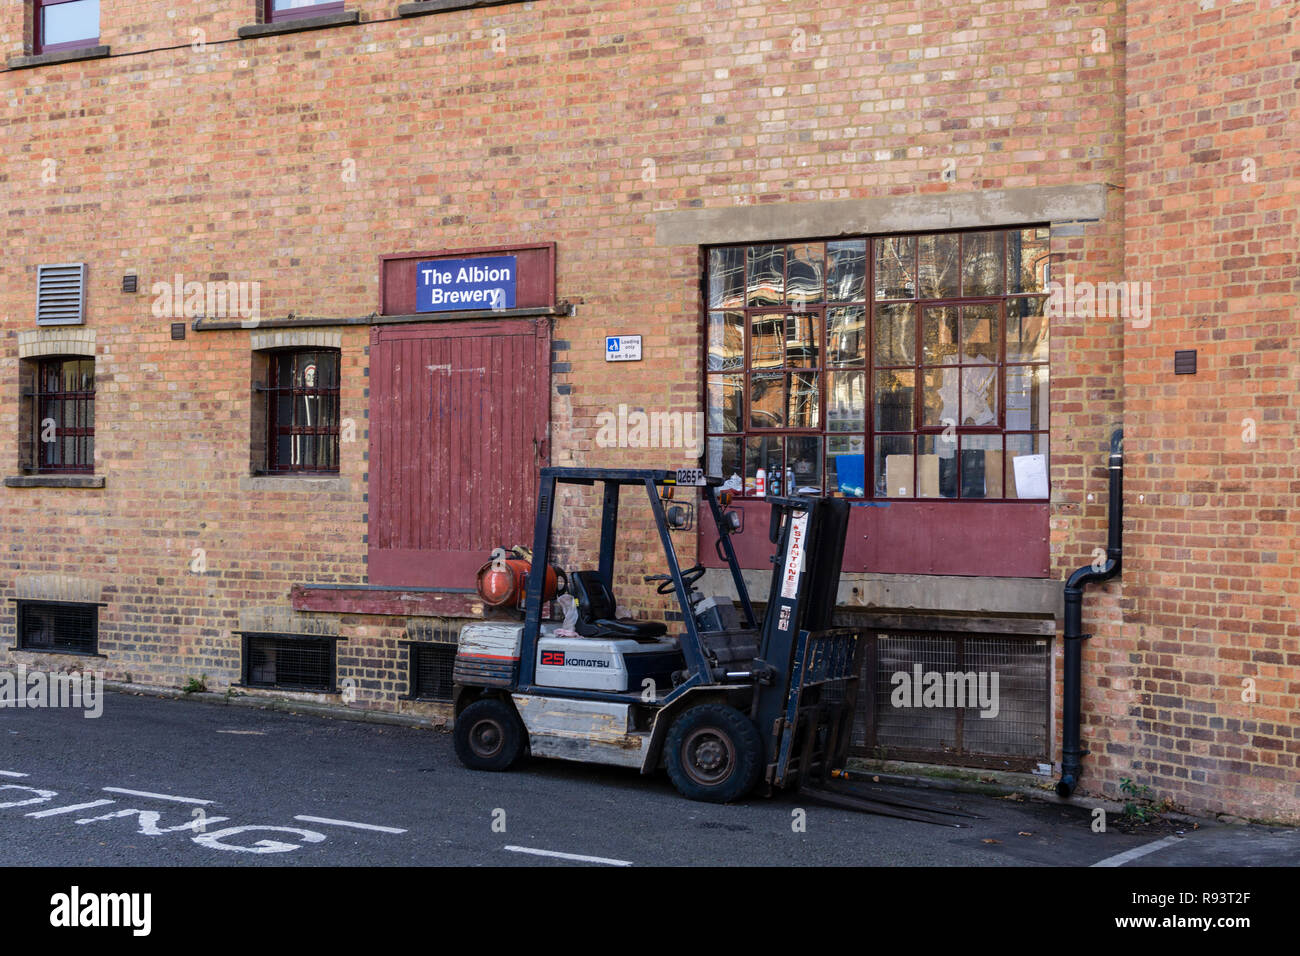 The Albion Brewery, a small local brewery based on the site of the old Phipps brewery; Northampton, UK Stock Photo